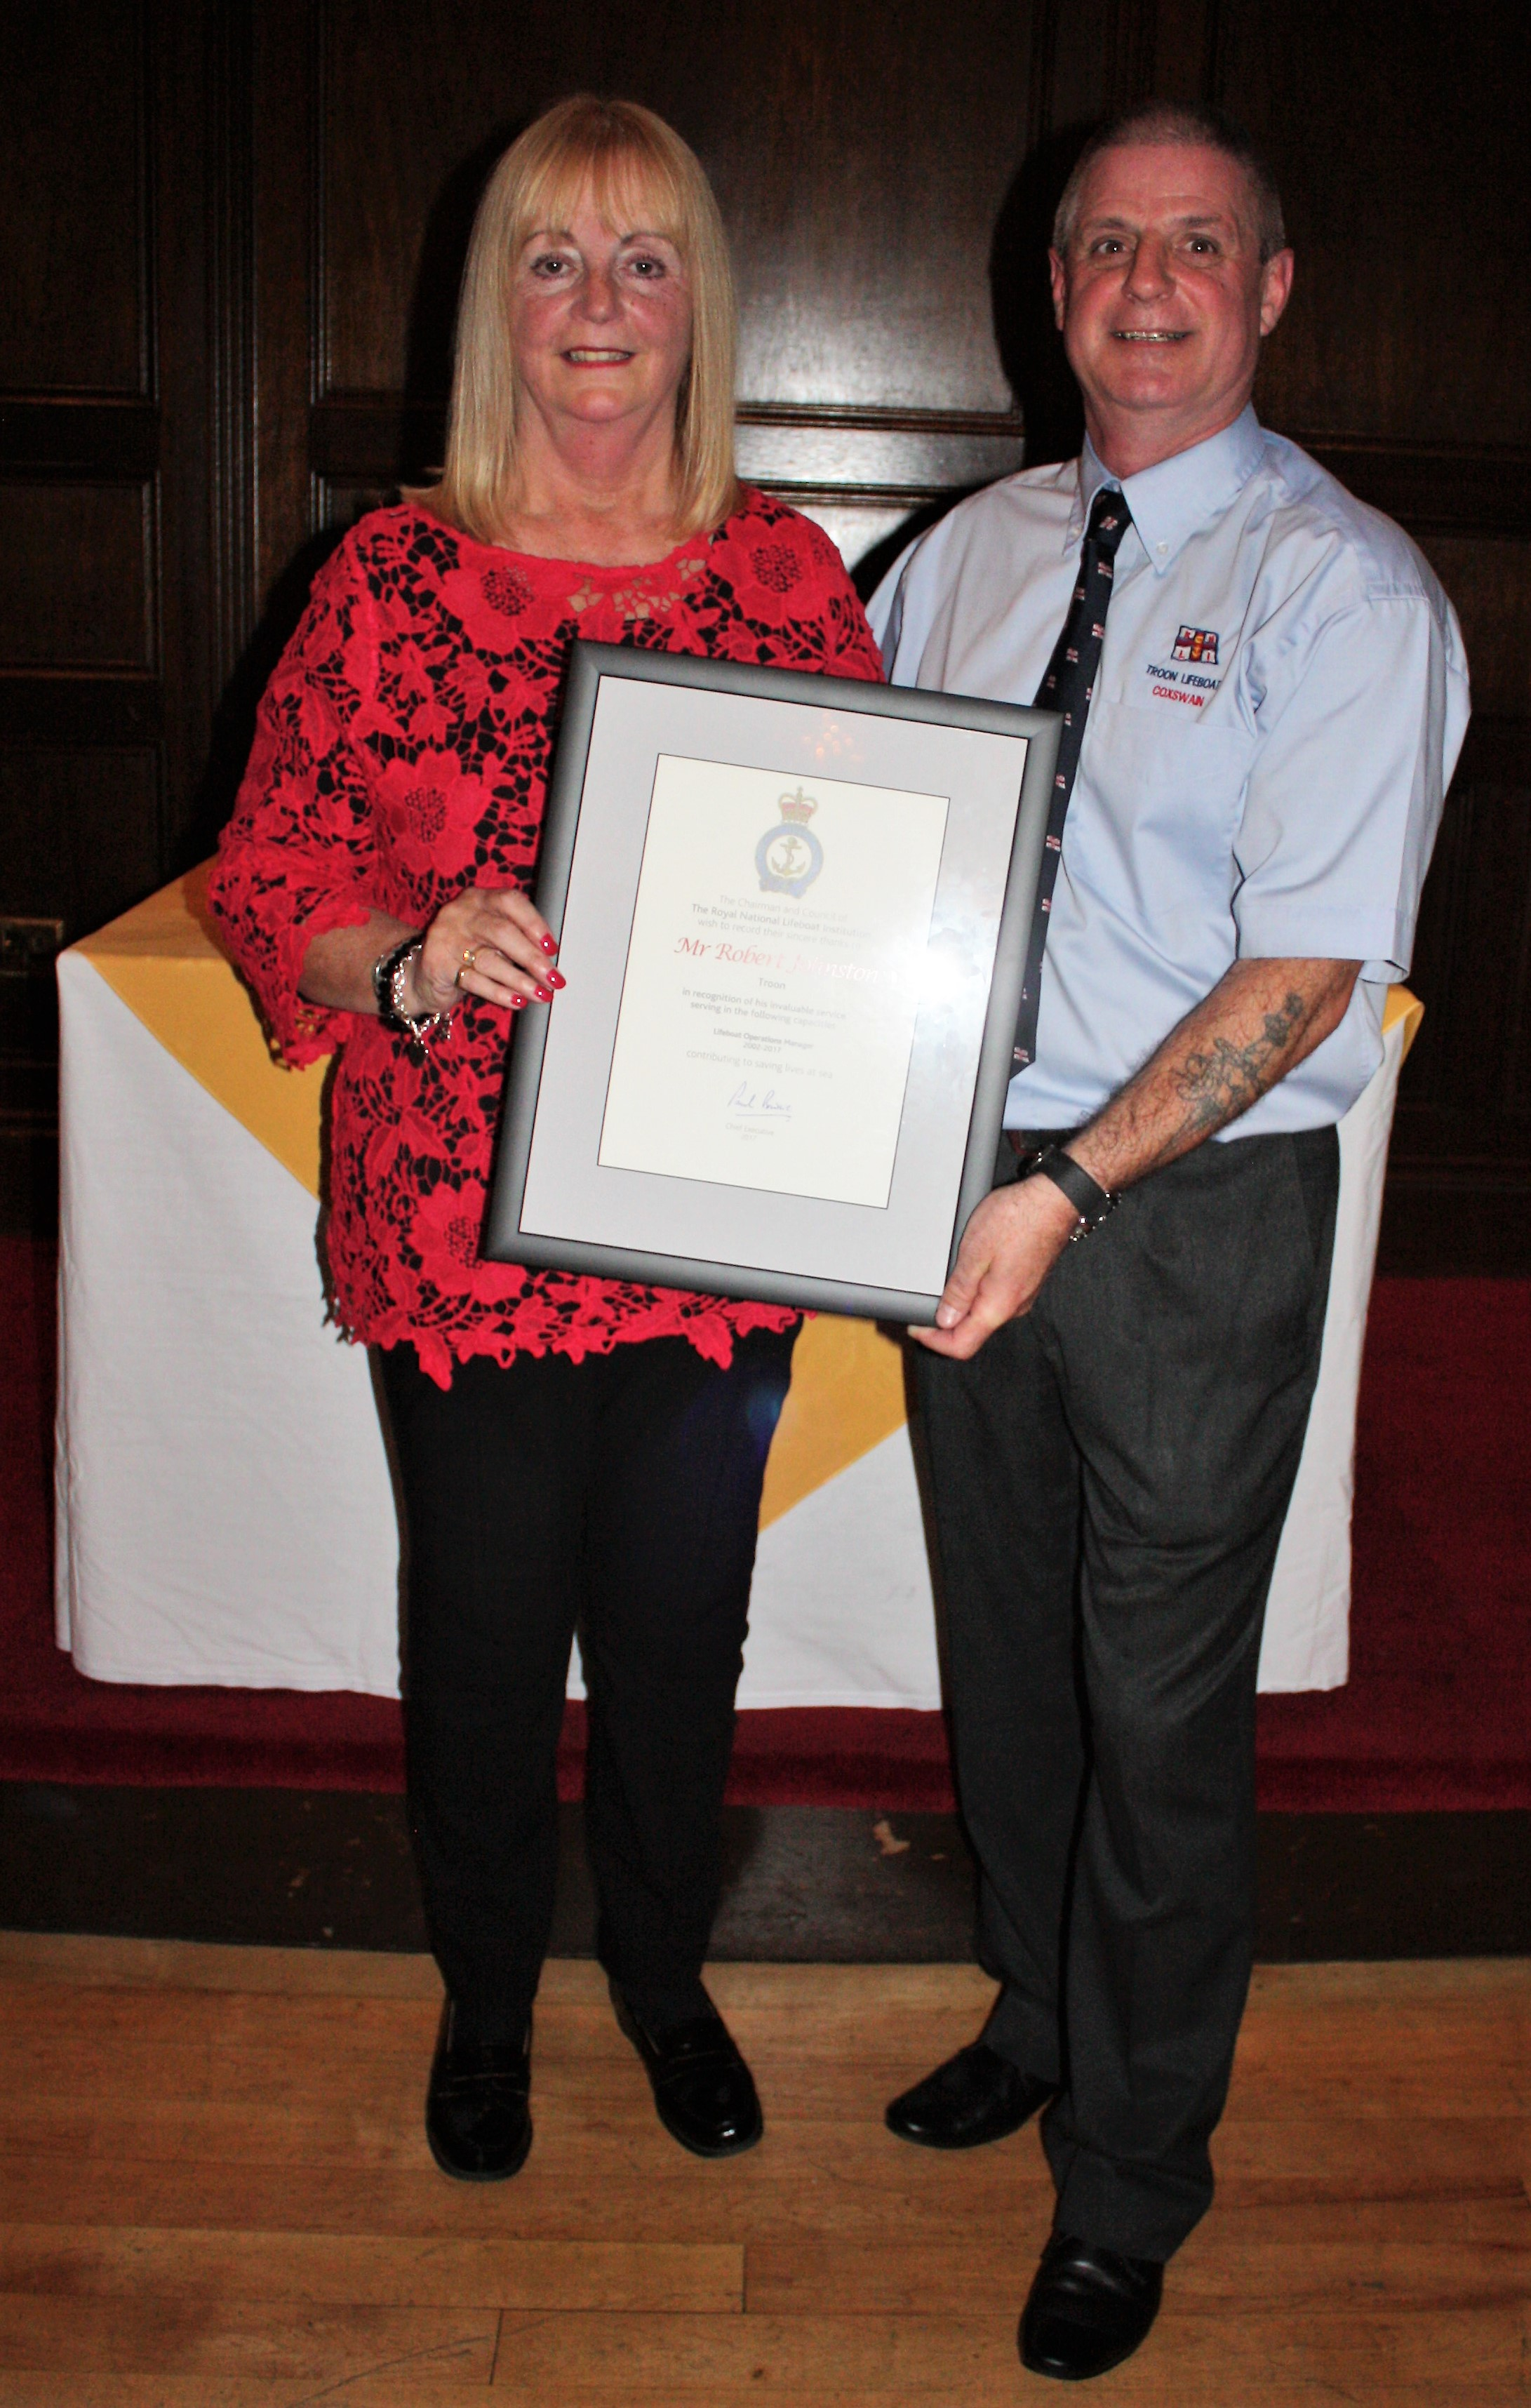 Certficate of Thanks presented to the sister of Lifeboat Operations Manager Bob Johnstone in his absence